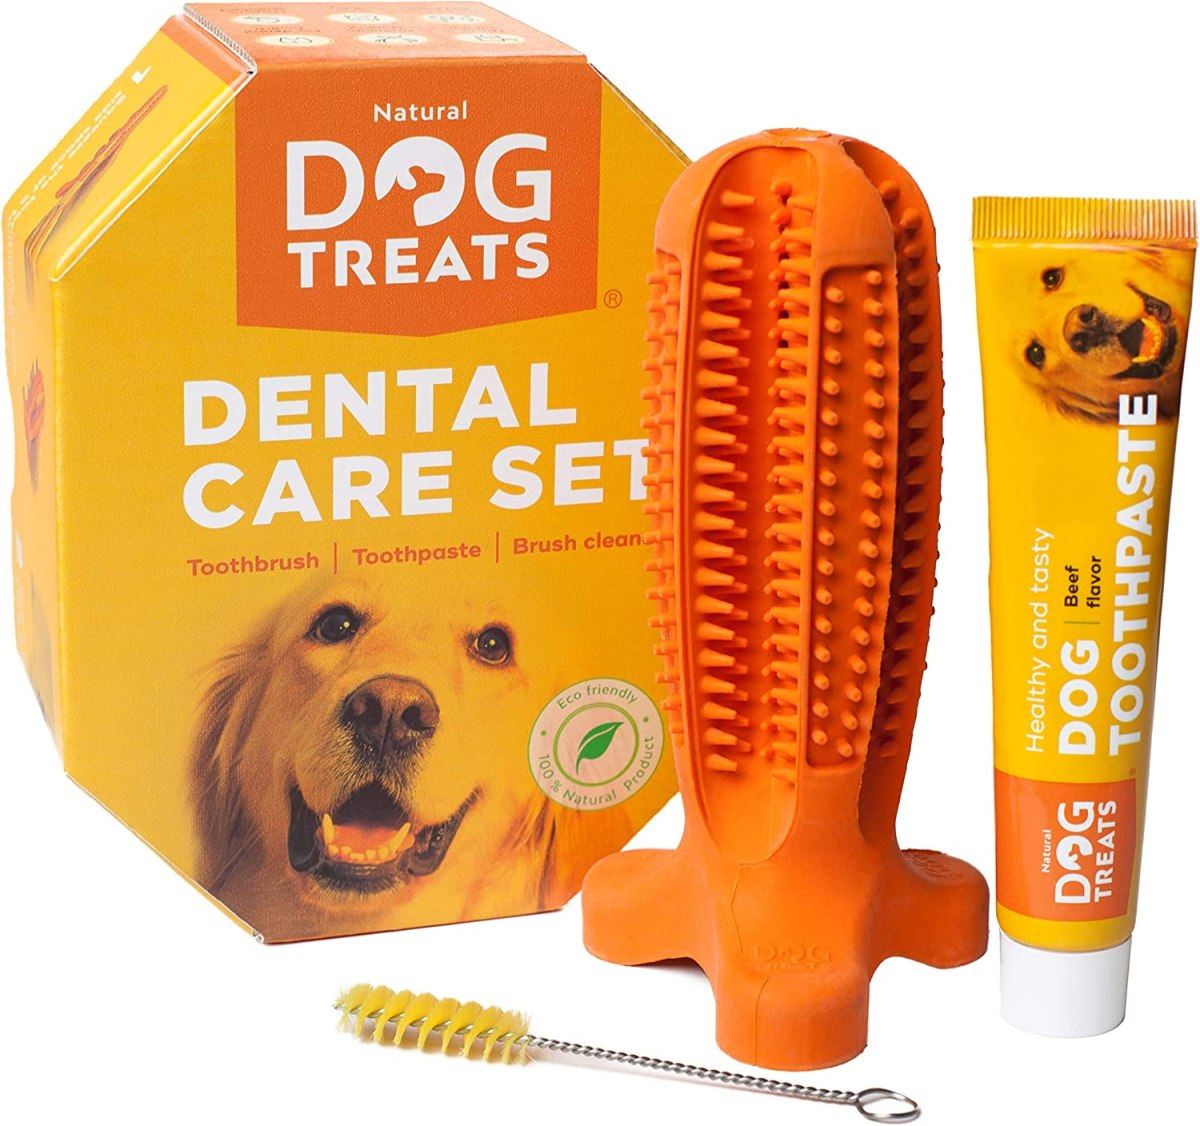 Natural Dog Treats Cepillo de Dientes y Dentífrico Set para Perros, 100% Natural Caucho Dog Brushing Stick, Juguete para Masticar